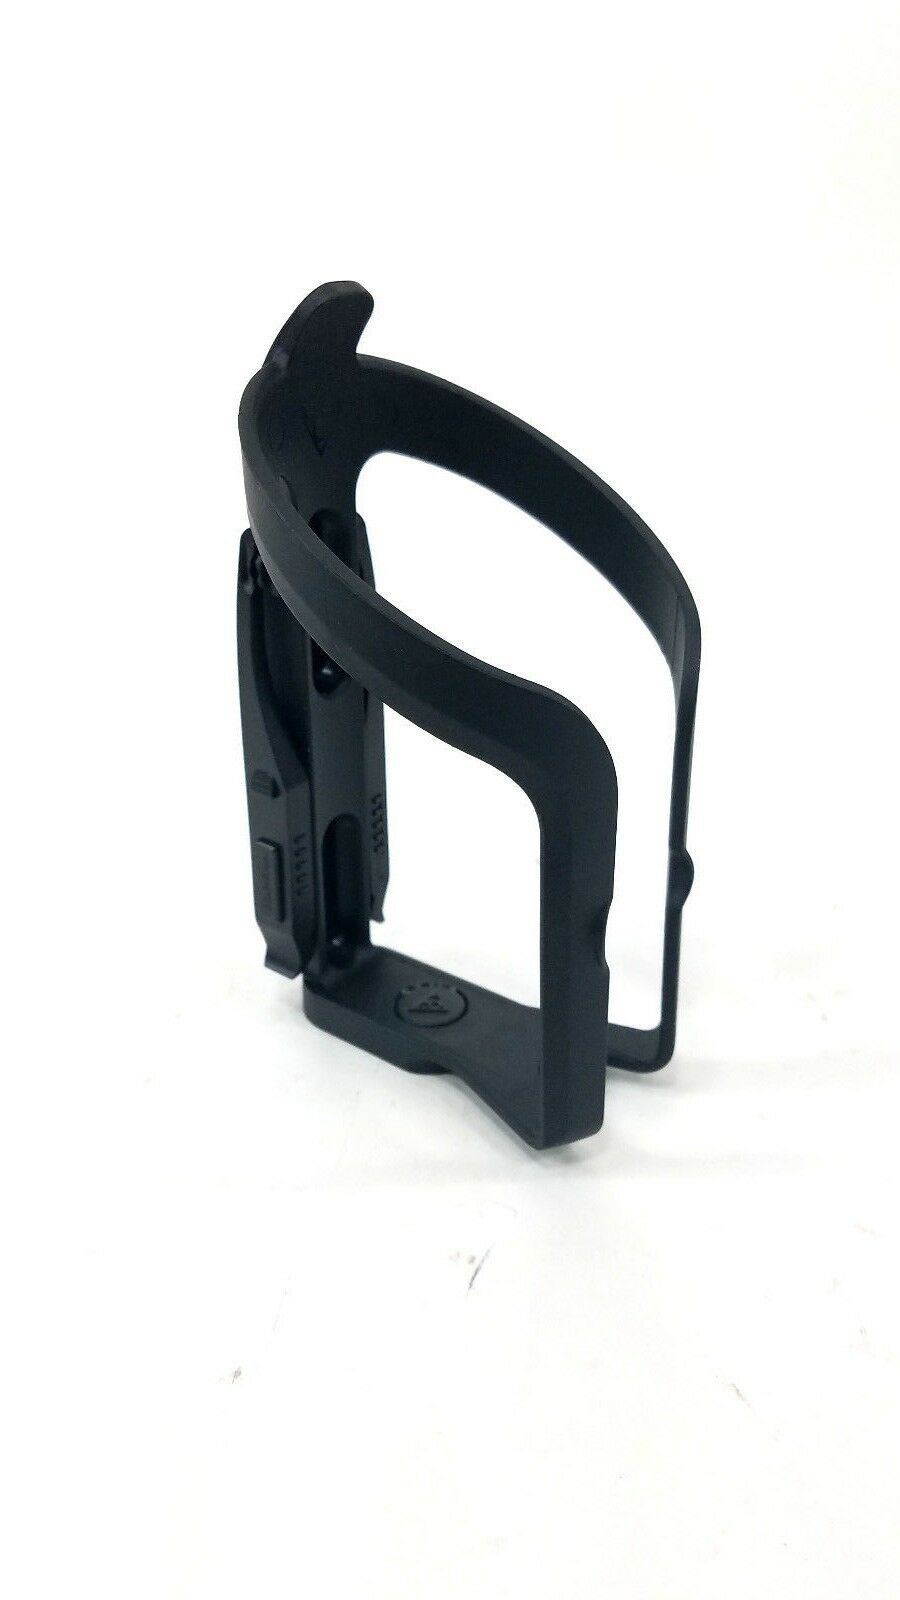 Topeak Ninja Cage Plus Cage Only with Integrated Tire Levers